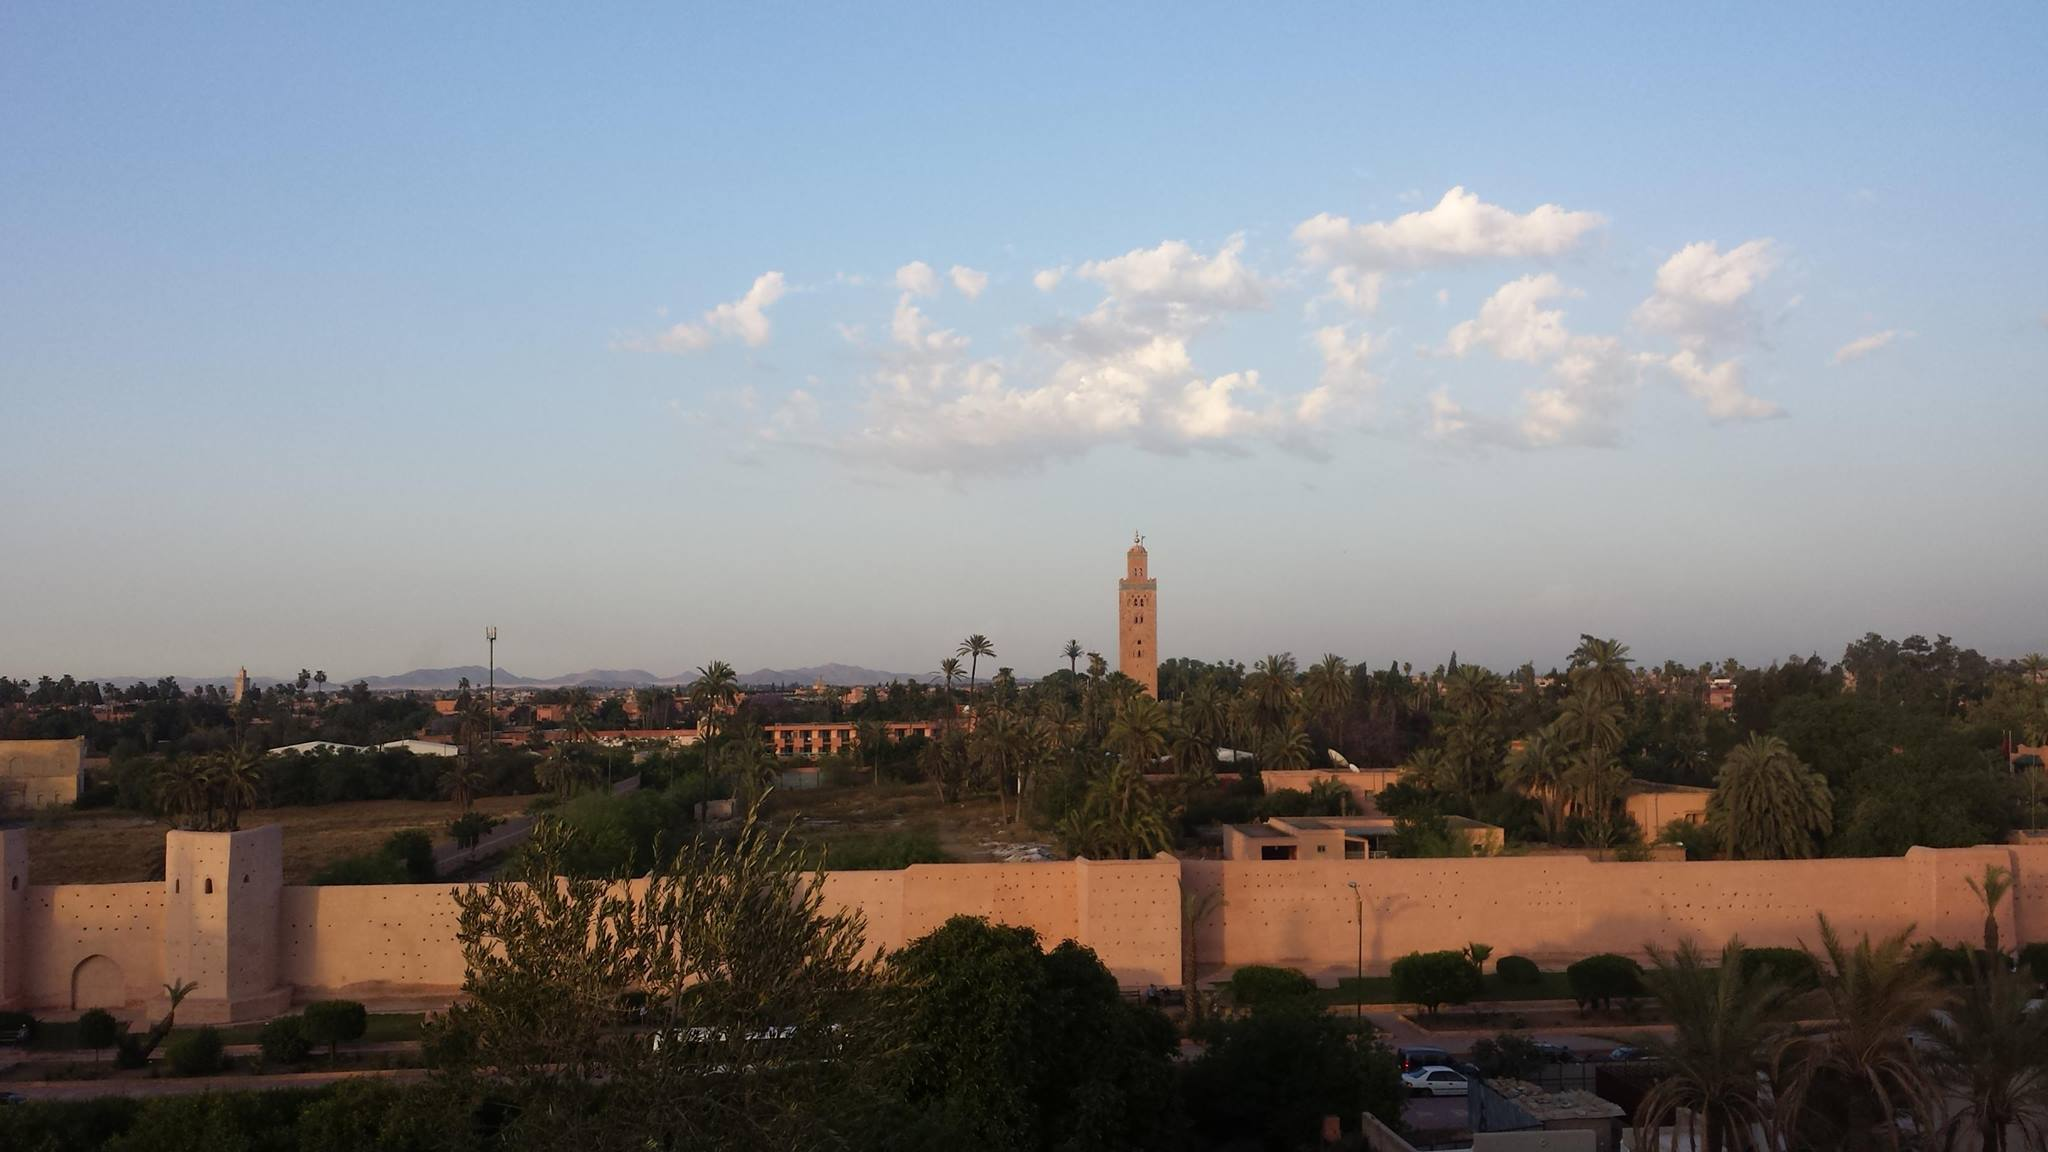 The old wall of Marrakech, Morocco